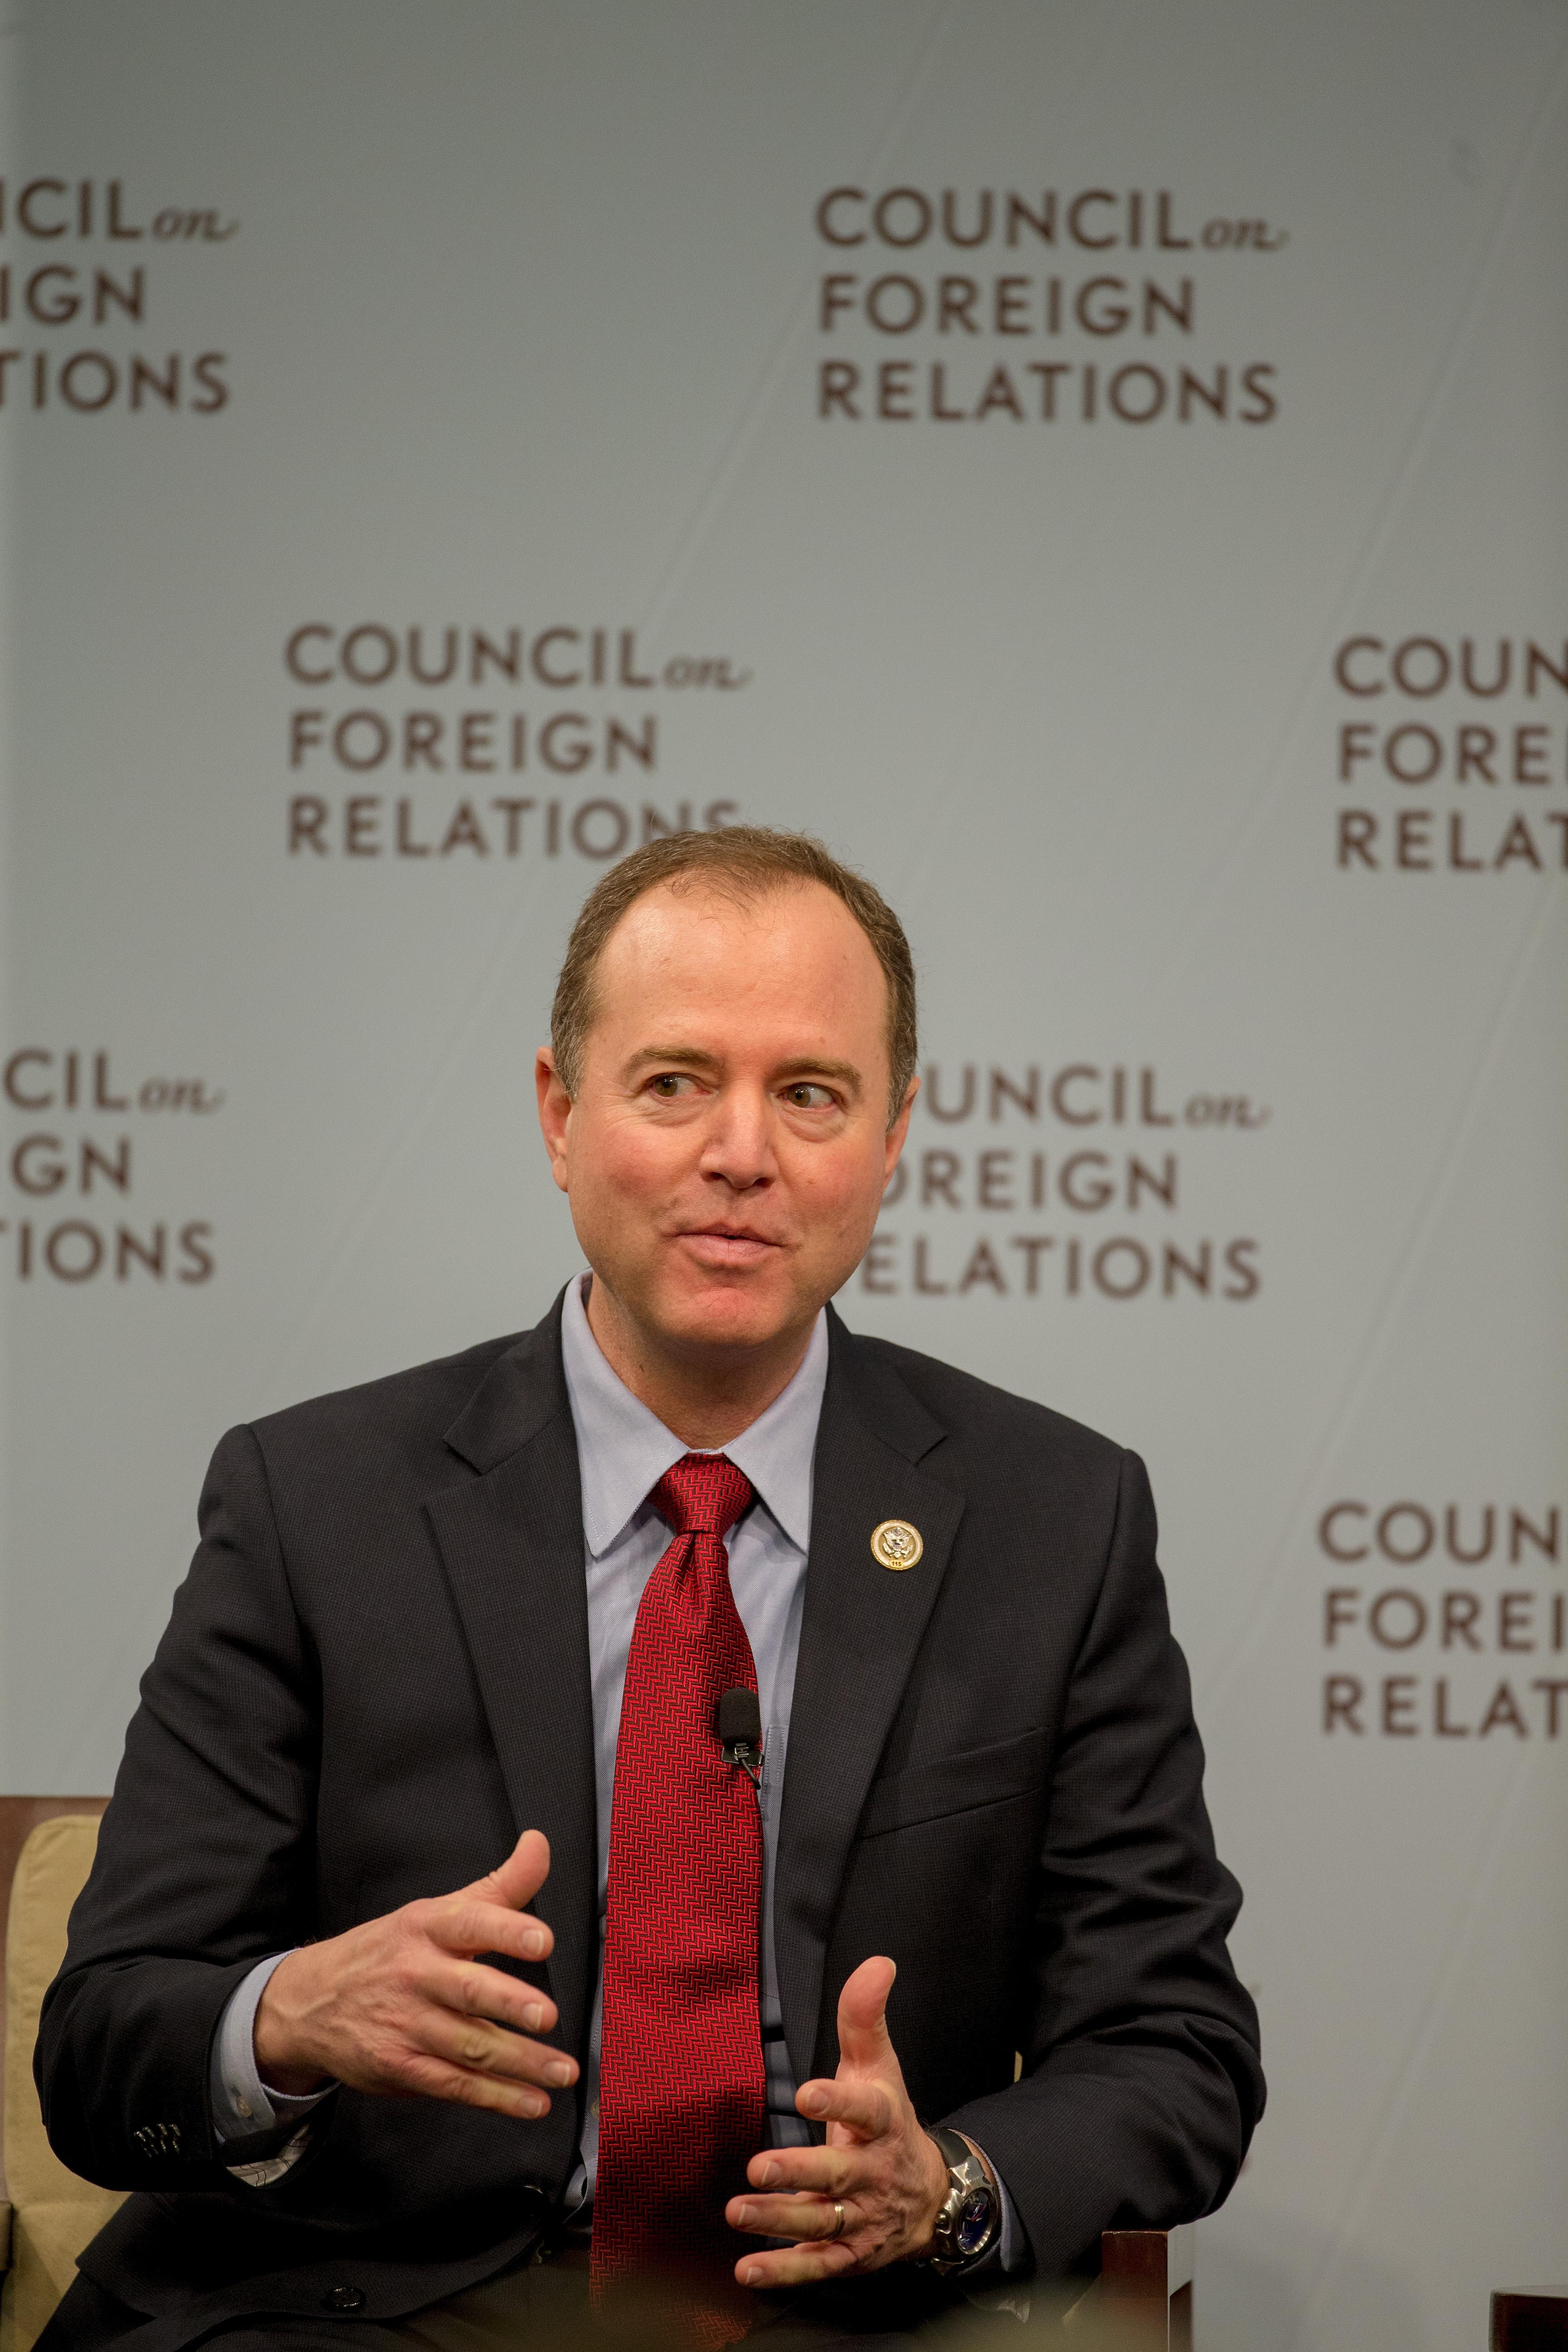 WASHINGTON, DC - FEBRUARY 16:  House Intelligence Ranking Member Adam Schiff (D-CA) speaks at the Council On Foreign Relations with Andrea Mitchell, Chief Foreign Affairs Correspondent at NBC News on February 16, 2018 in Washington, DC.  (Photo by Tasos Katopodis/Getty Images)